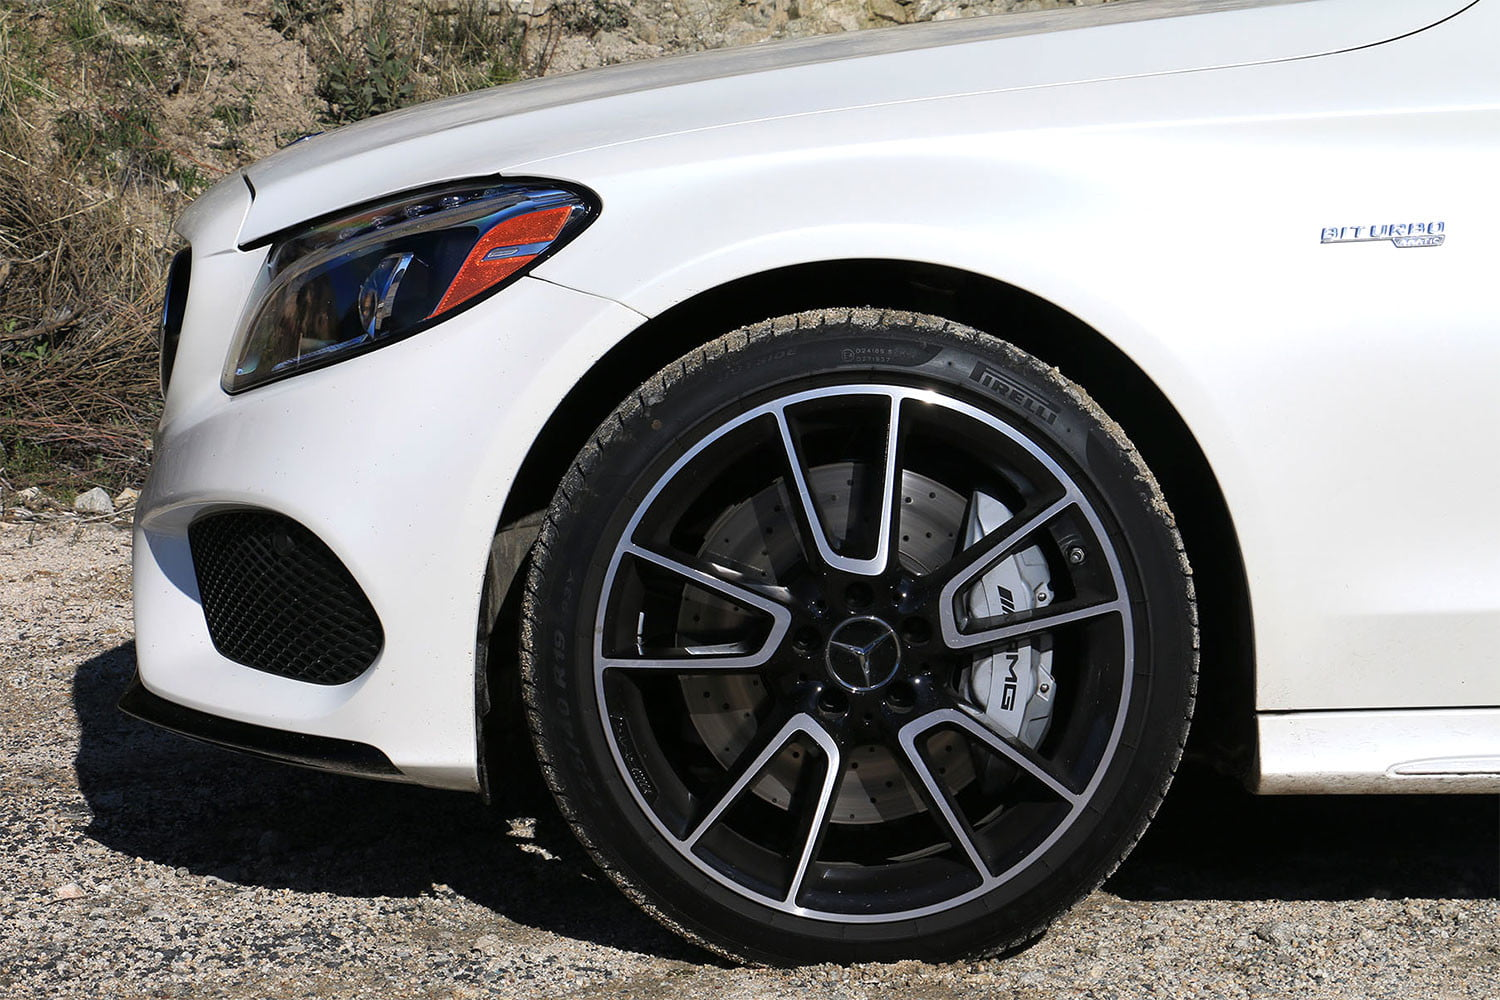 https://icdn4.digitaltrends.com/image/2017-mercedes-amg-c43-coupe-4-1500x1000.jpg?ver=1